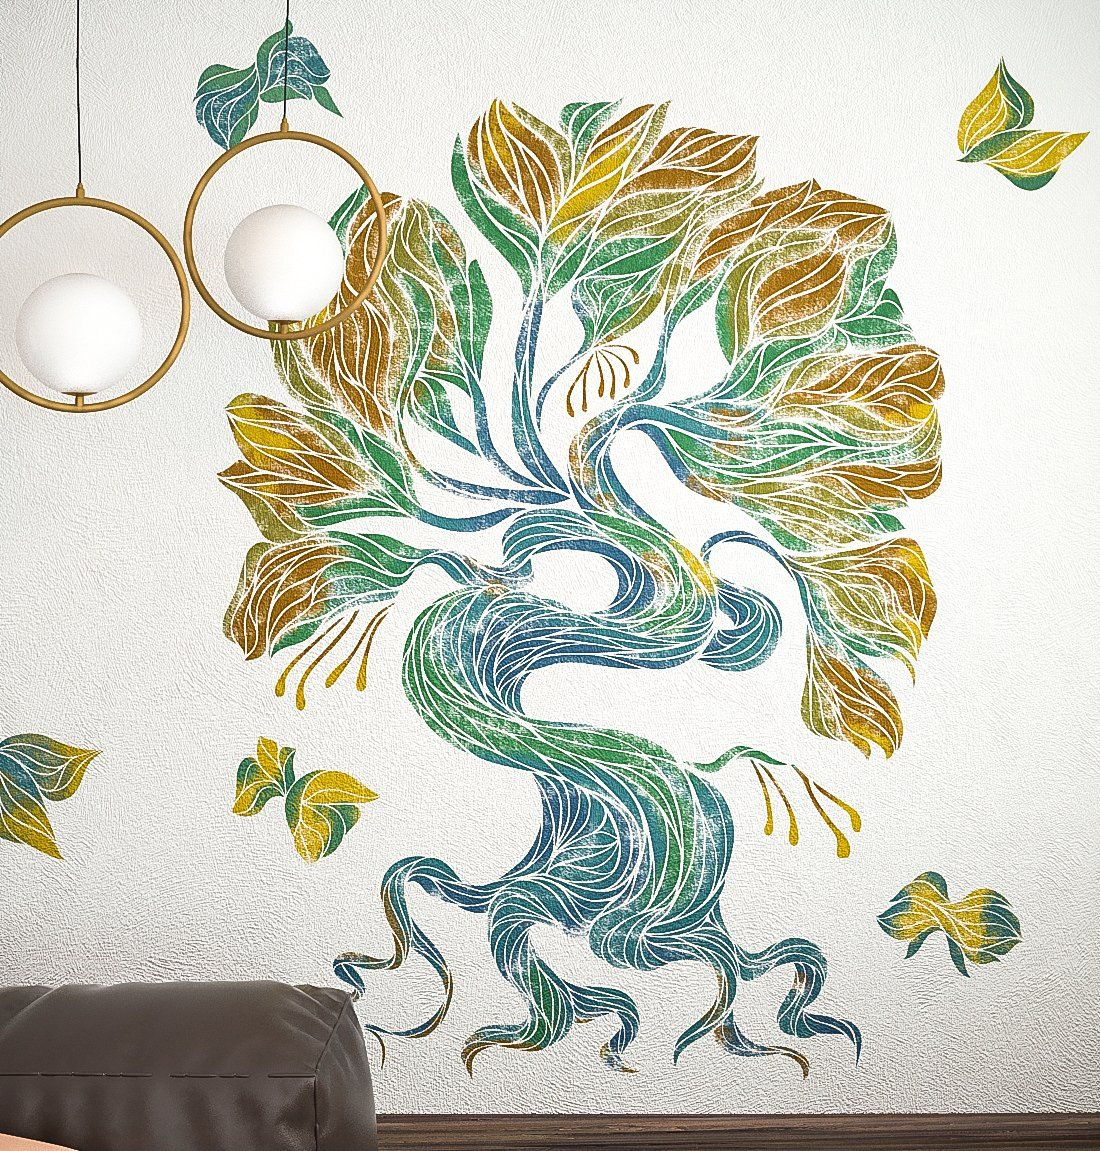 Large tree stencil for wall images home wall decoration ideas large wall stencils trees image collections home wall decoration tree stencil for wall painting images home amipublicfo Gallery